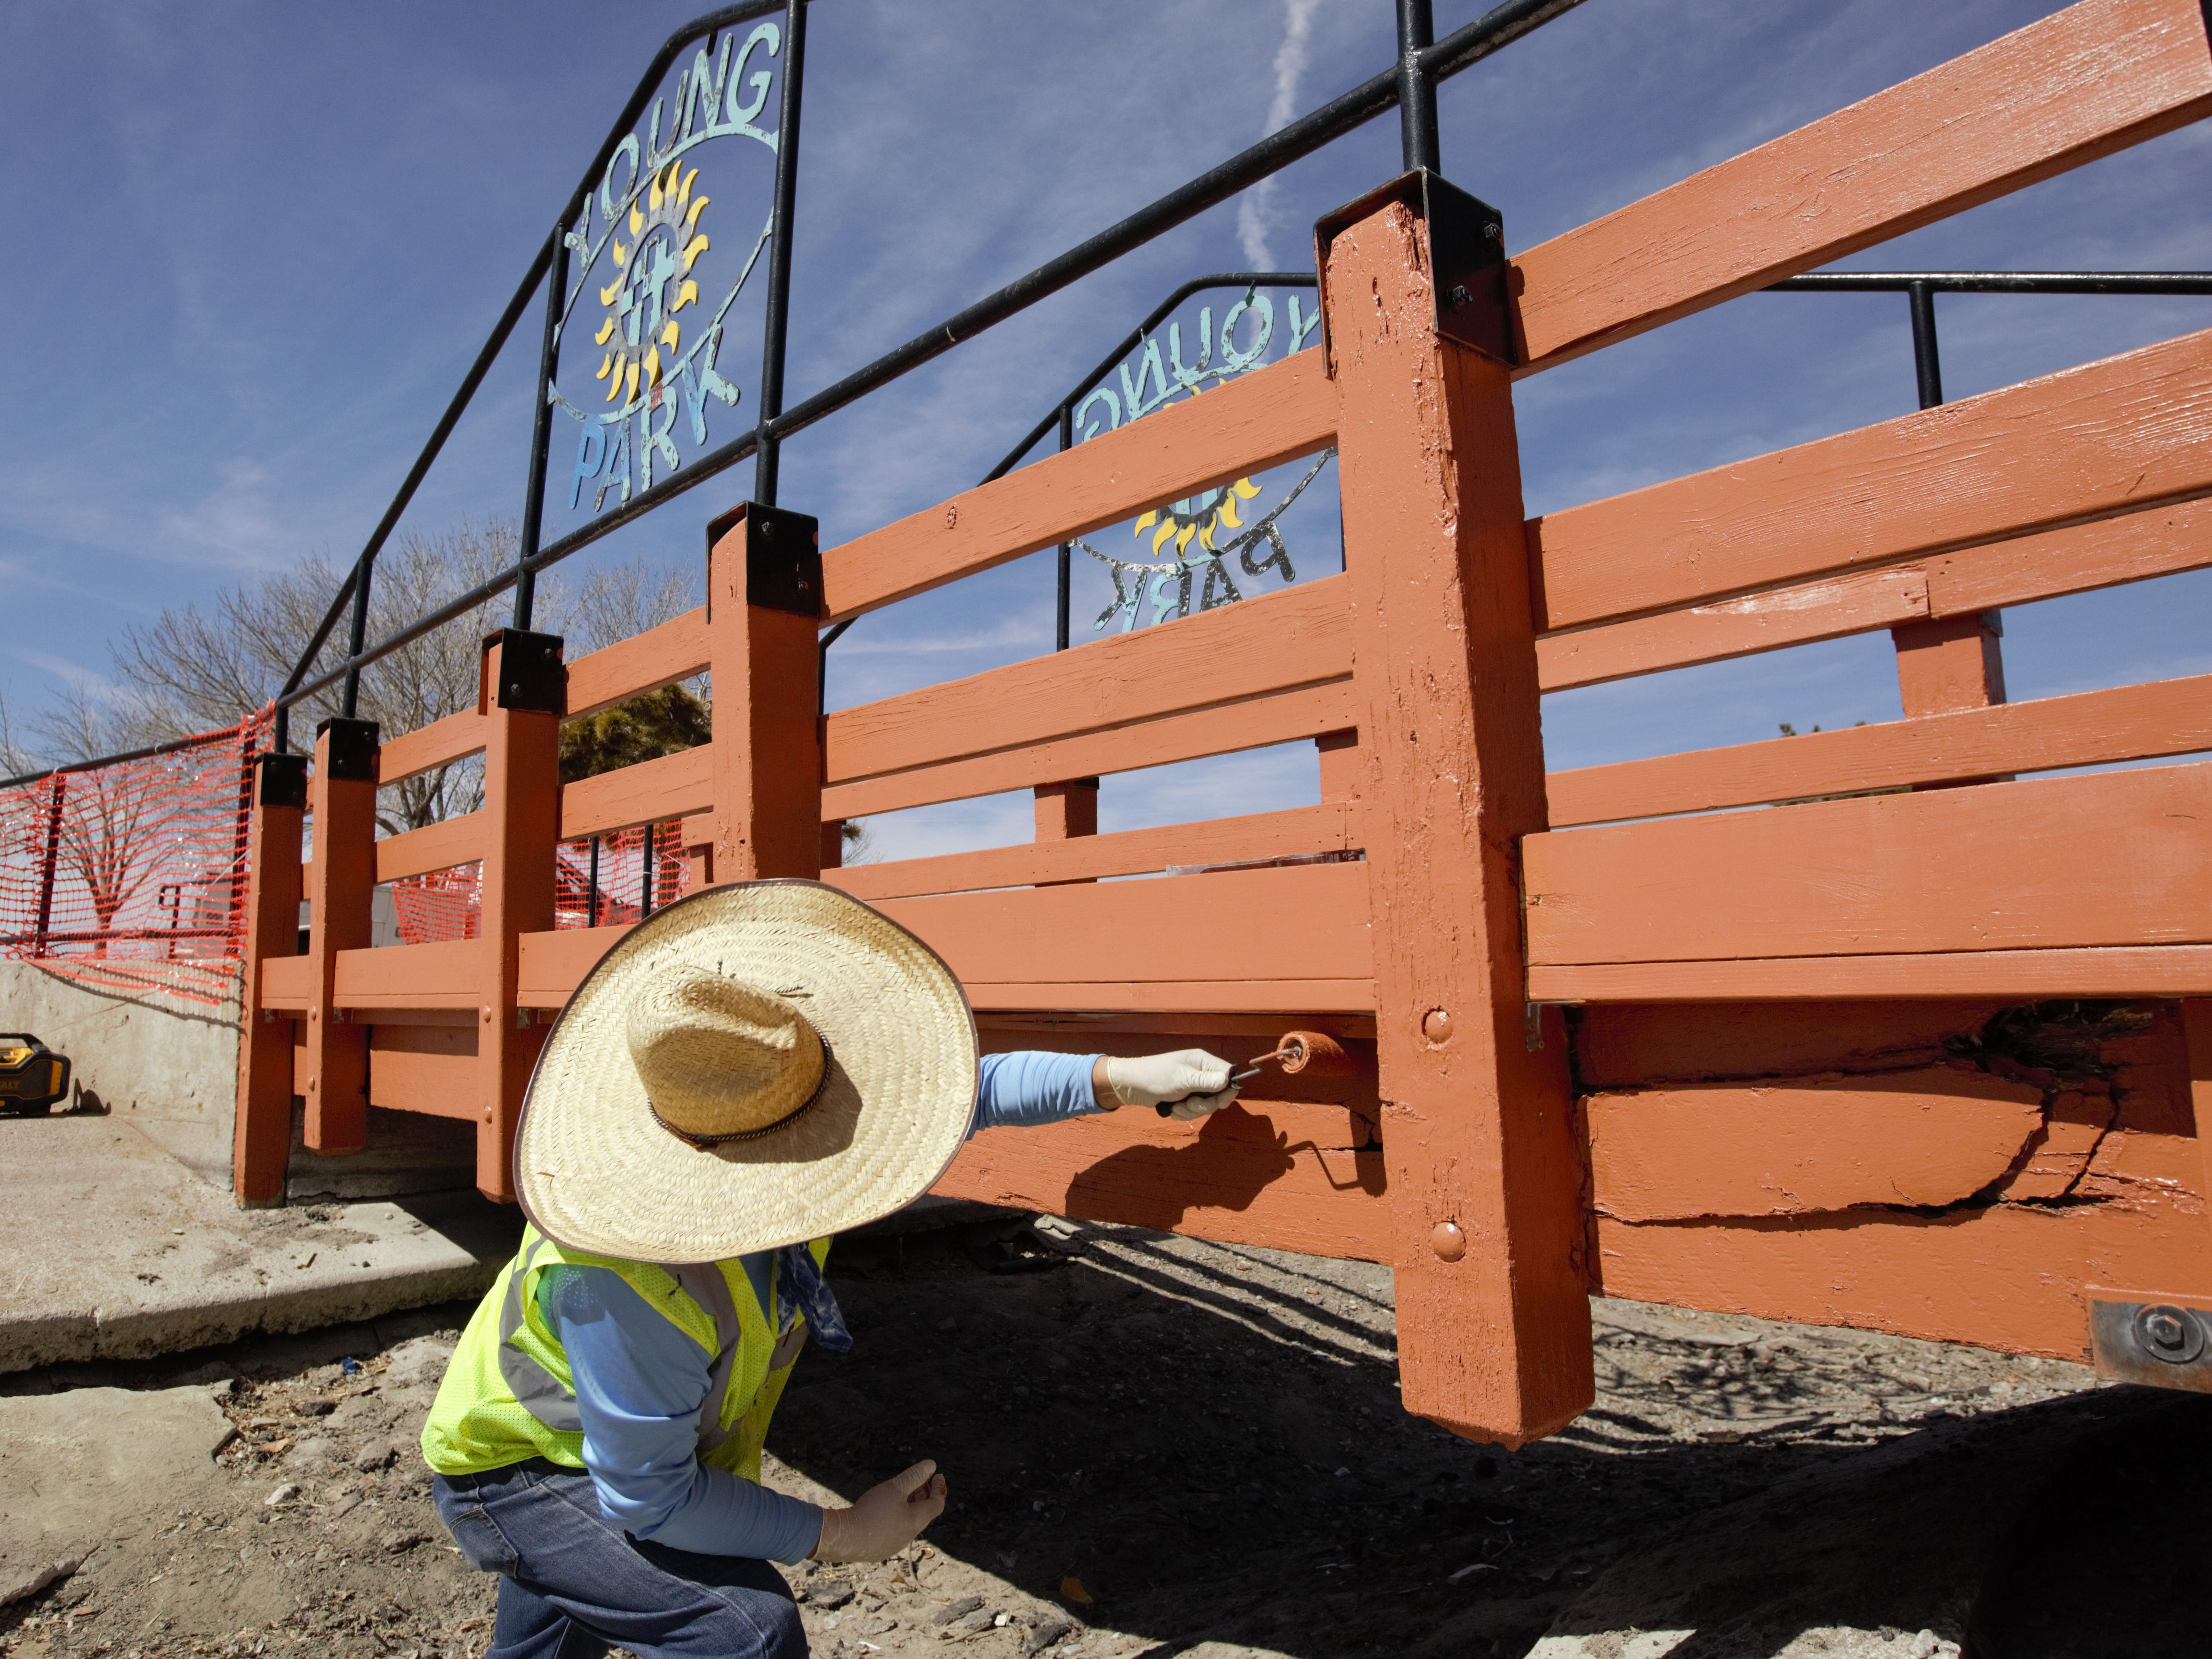 City parks employee Joe Maez paints a portion of a bridge at Young Park on Monday, Feb. 25, 2019, as part of an ongoing park and pond refurbishment.